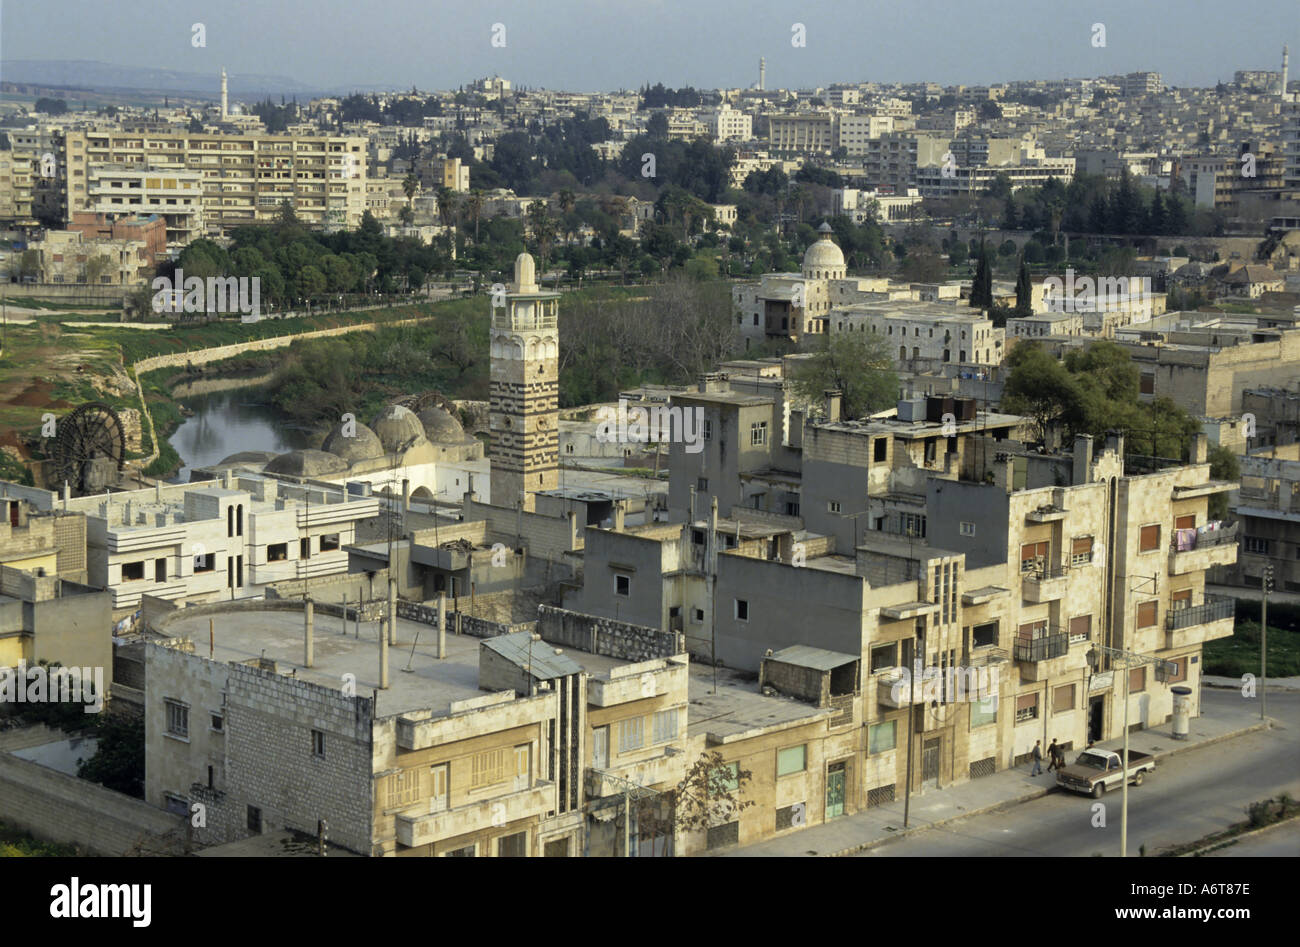 Hama, Syria - The Al-Nuri Mosque viewed from the Citadel Stock Photo